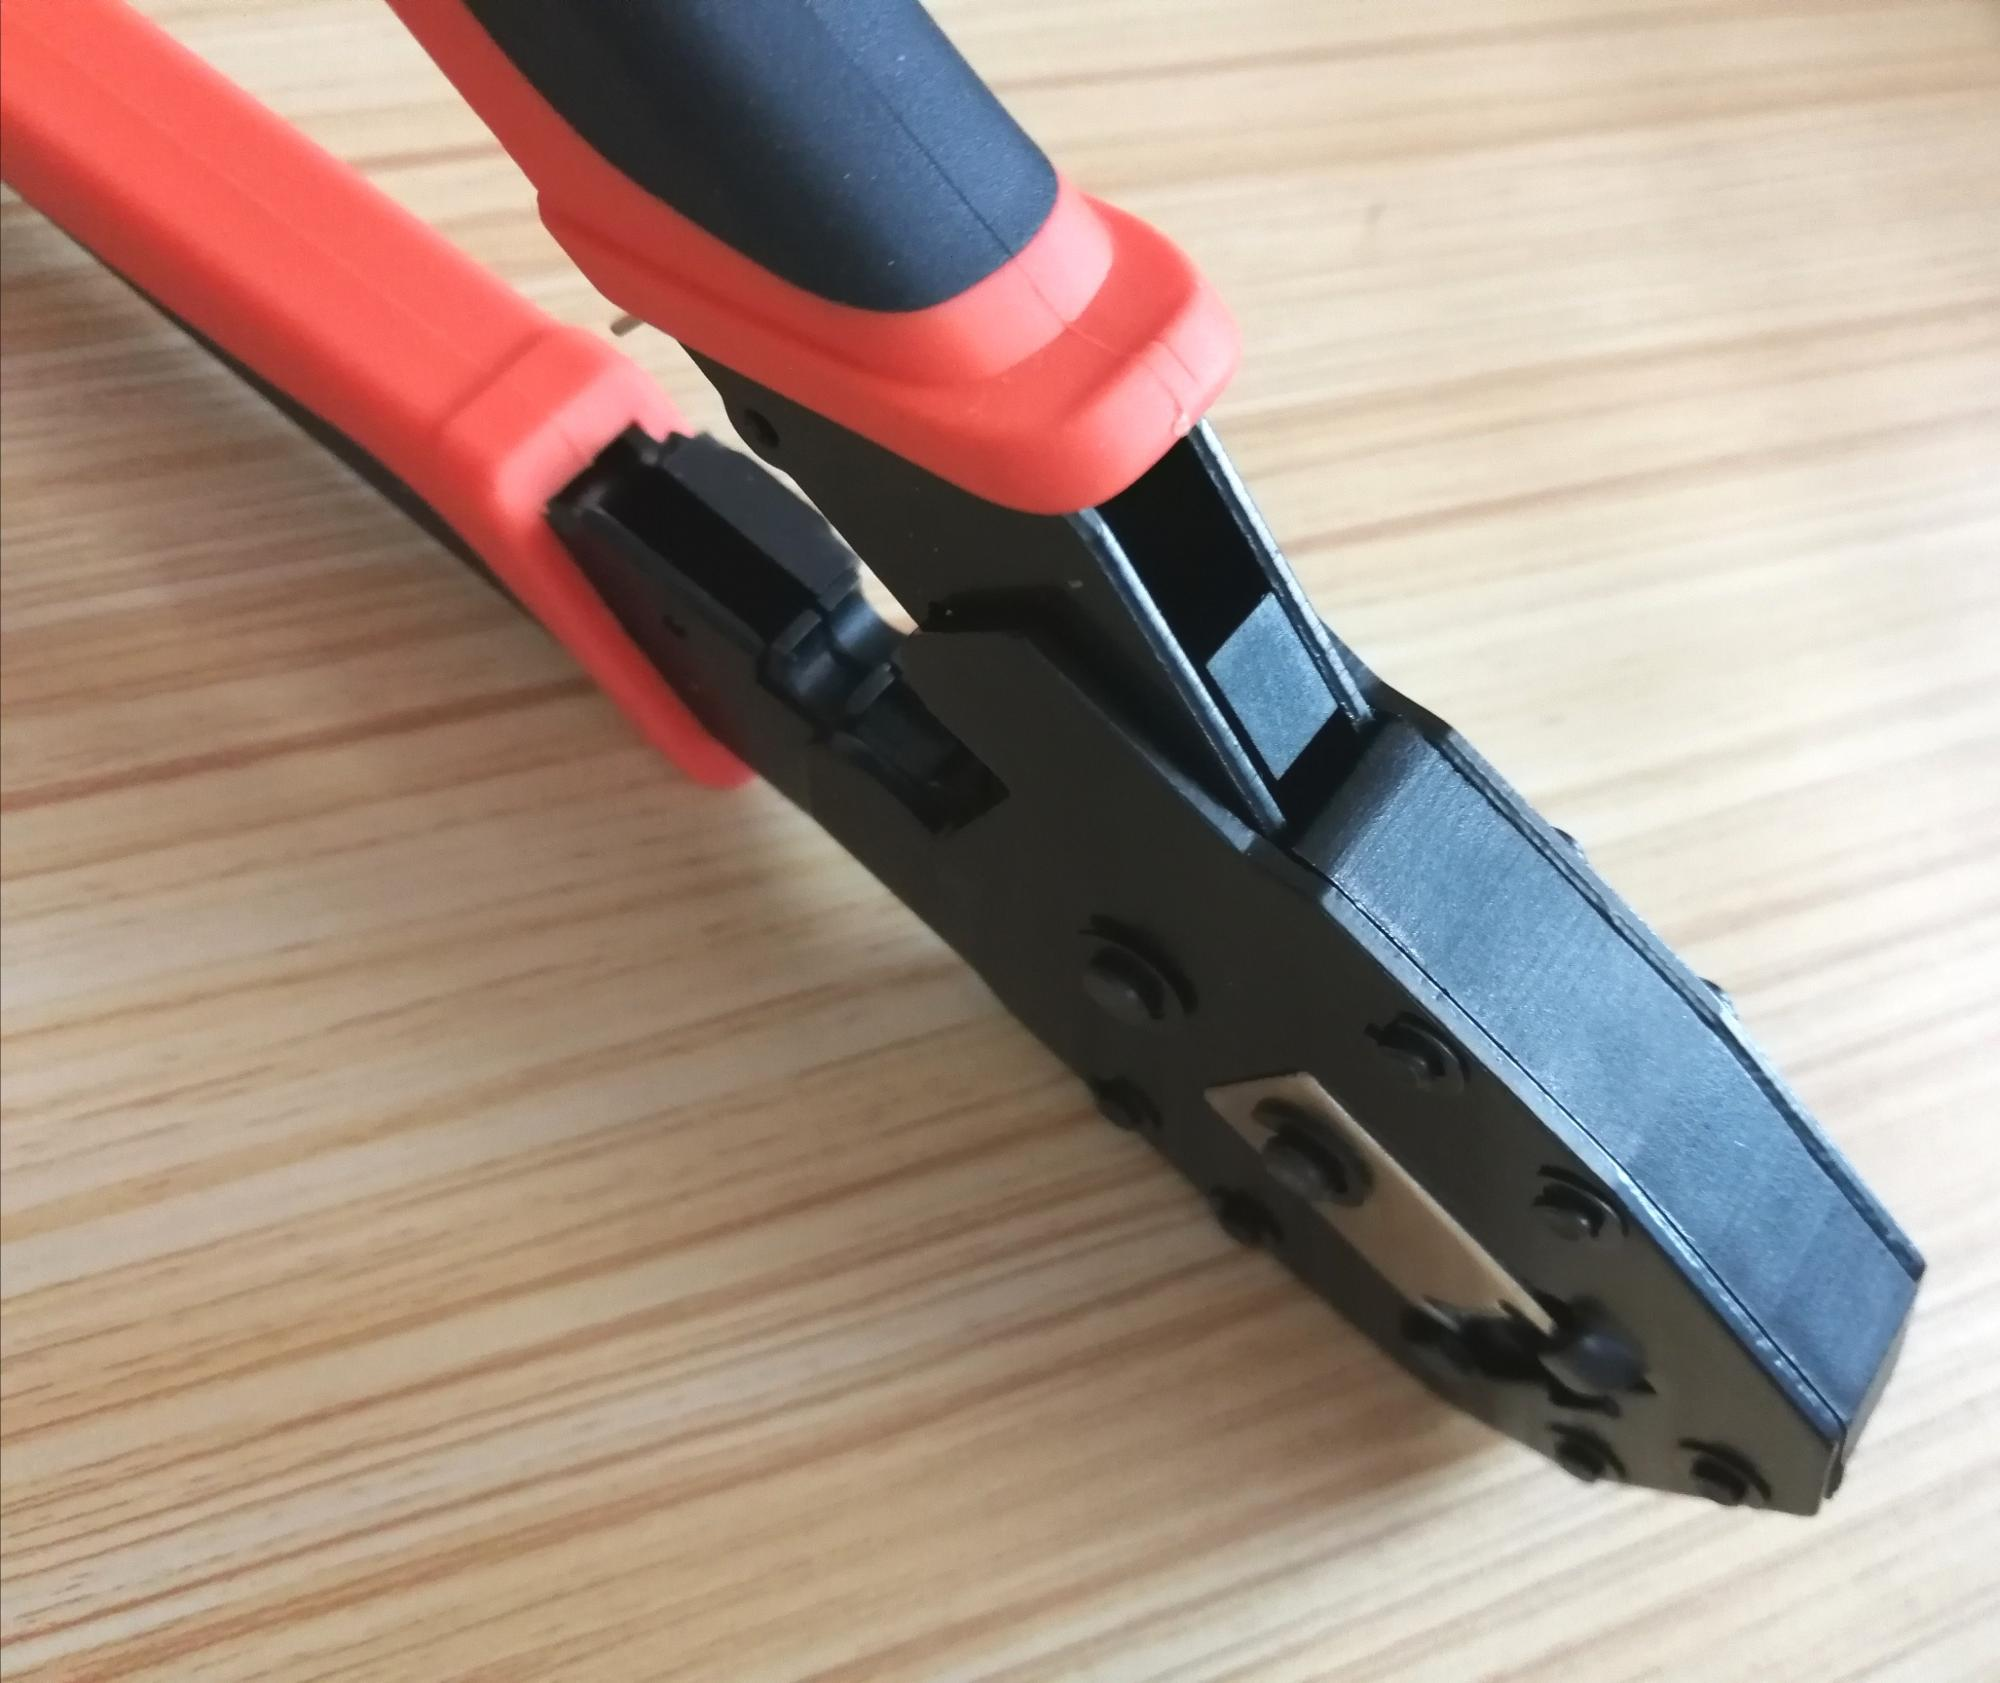 Modular Crimp tools RJ11 RJ12 RJ45 tool crimpig